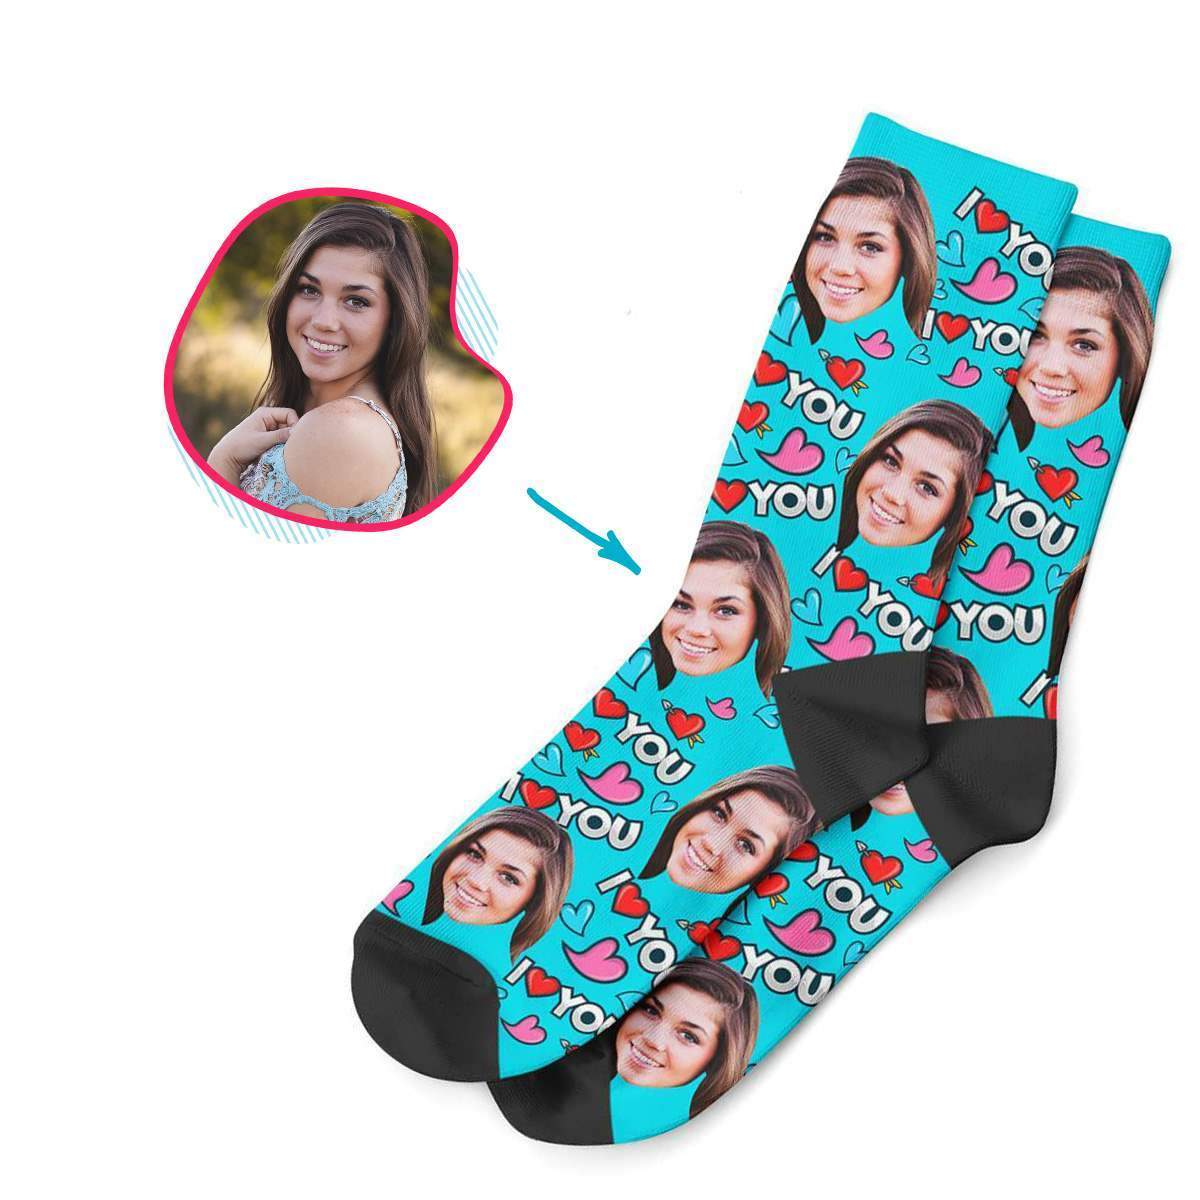 blue Love You socks personalized with photo of face printed on them